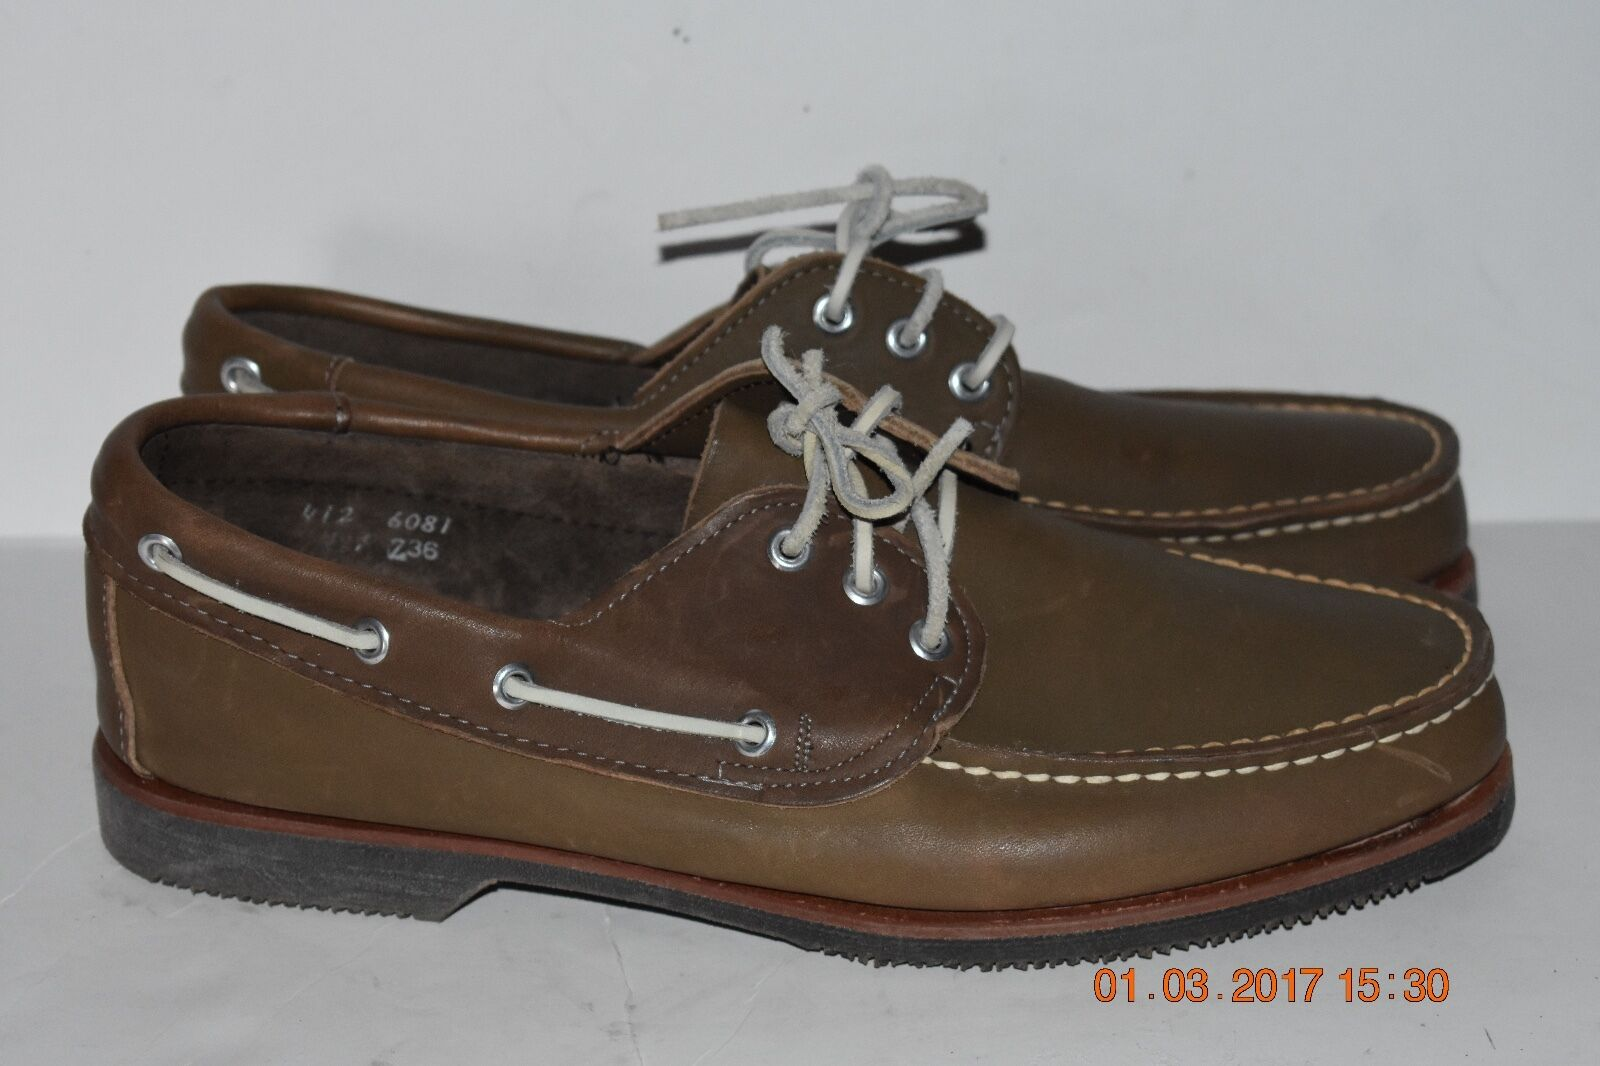 Pine Ridge Men's Size 12 Leather Casual Boat shoes